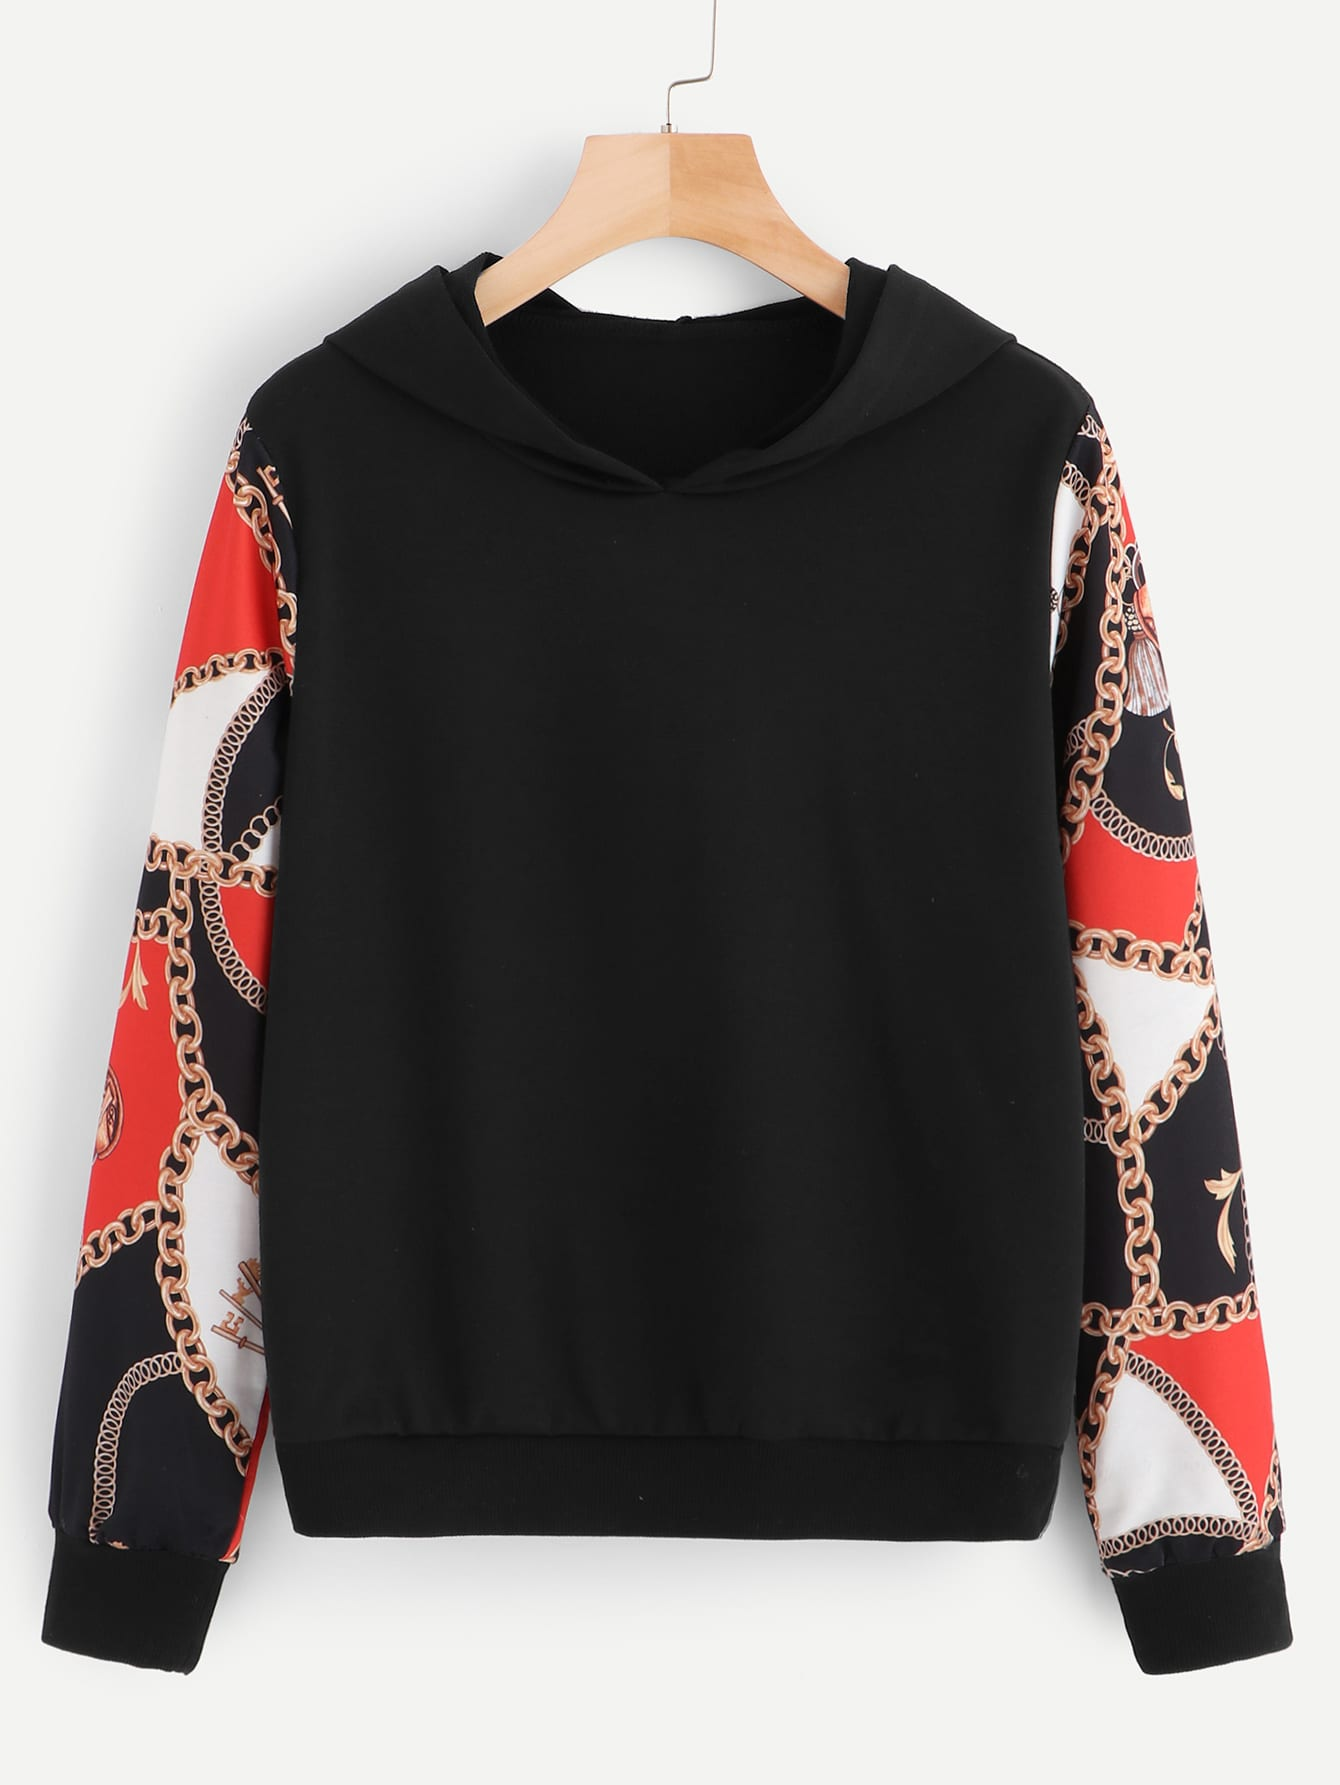 Chain Print Sleeve Hooded Sweatshirt Chain Print Sleeve Hooded Sweatshirt